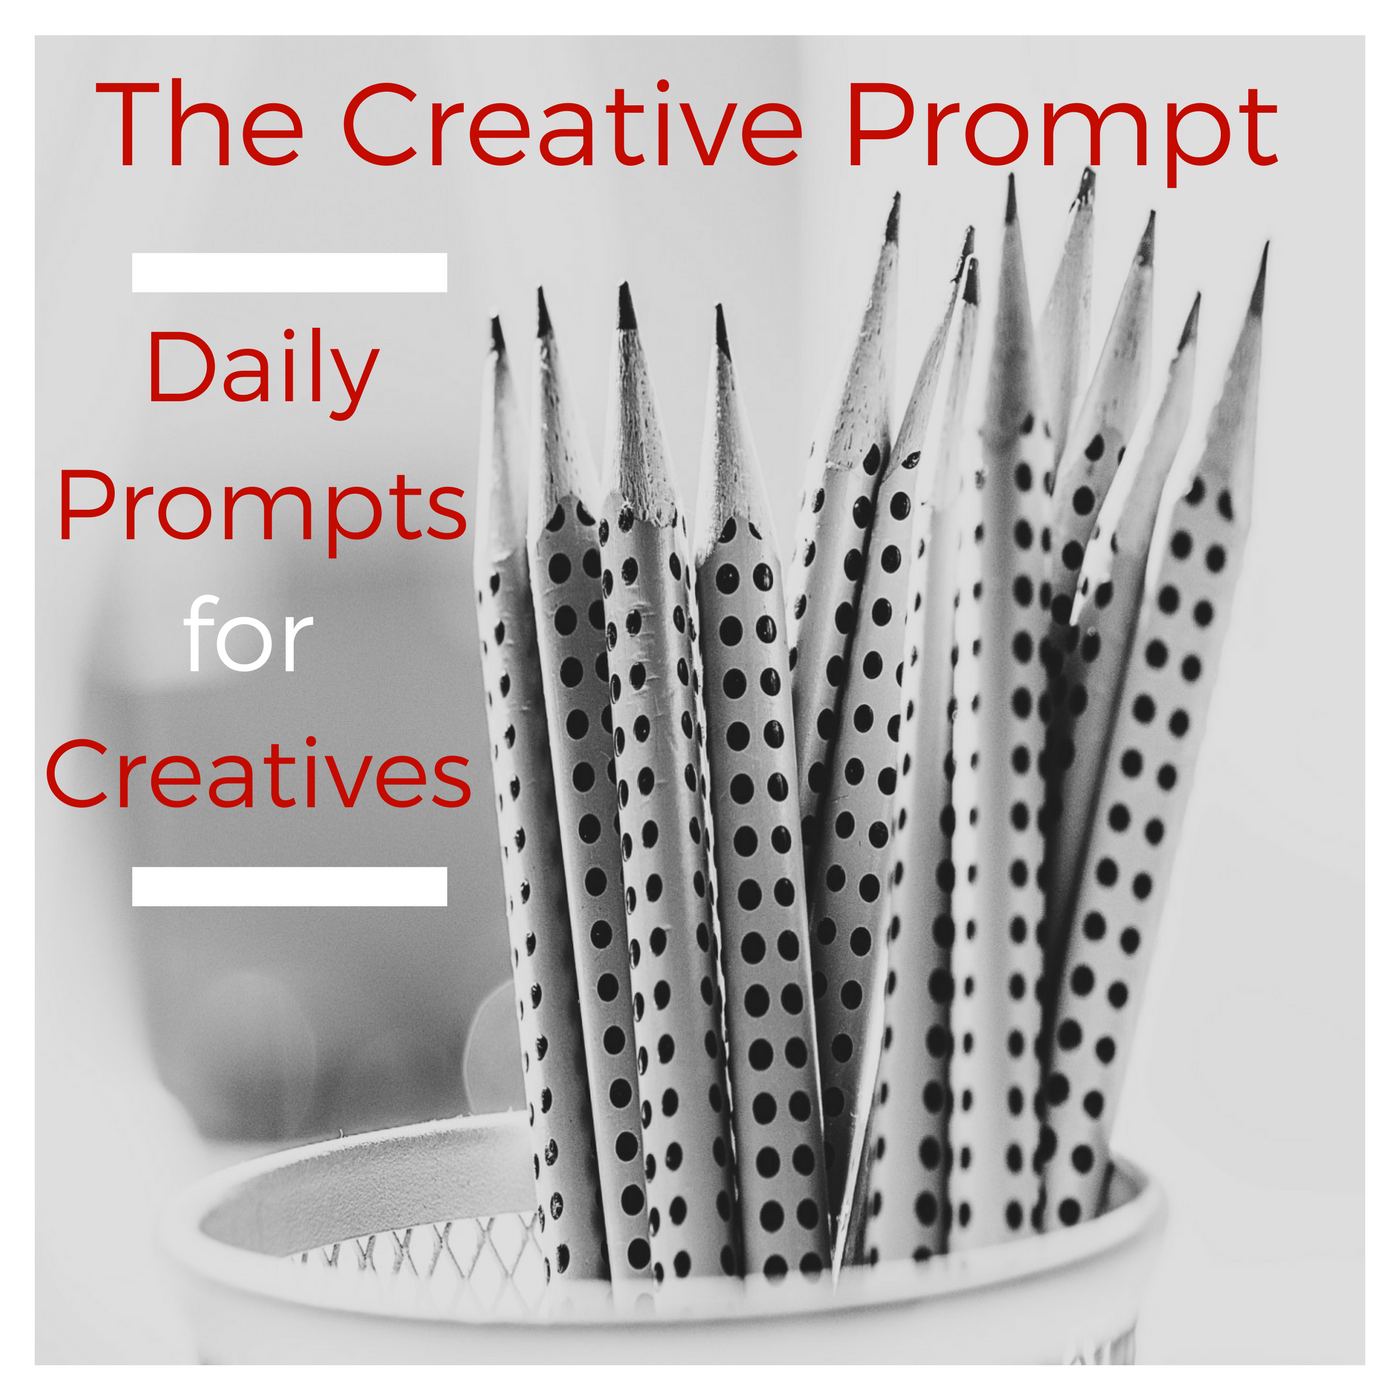 The Creative Prompt